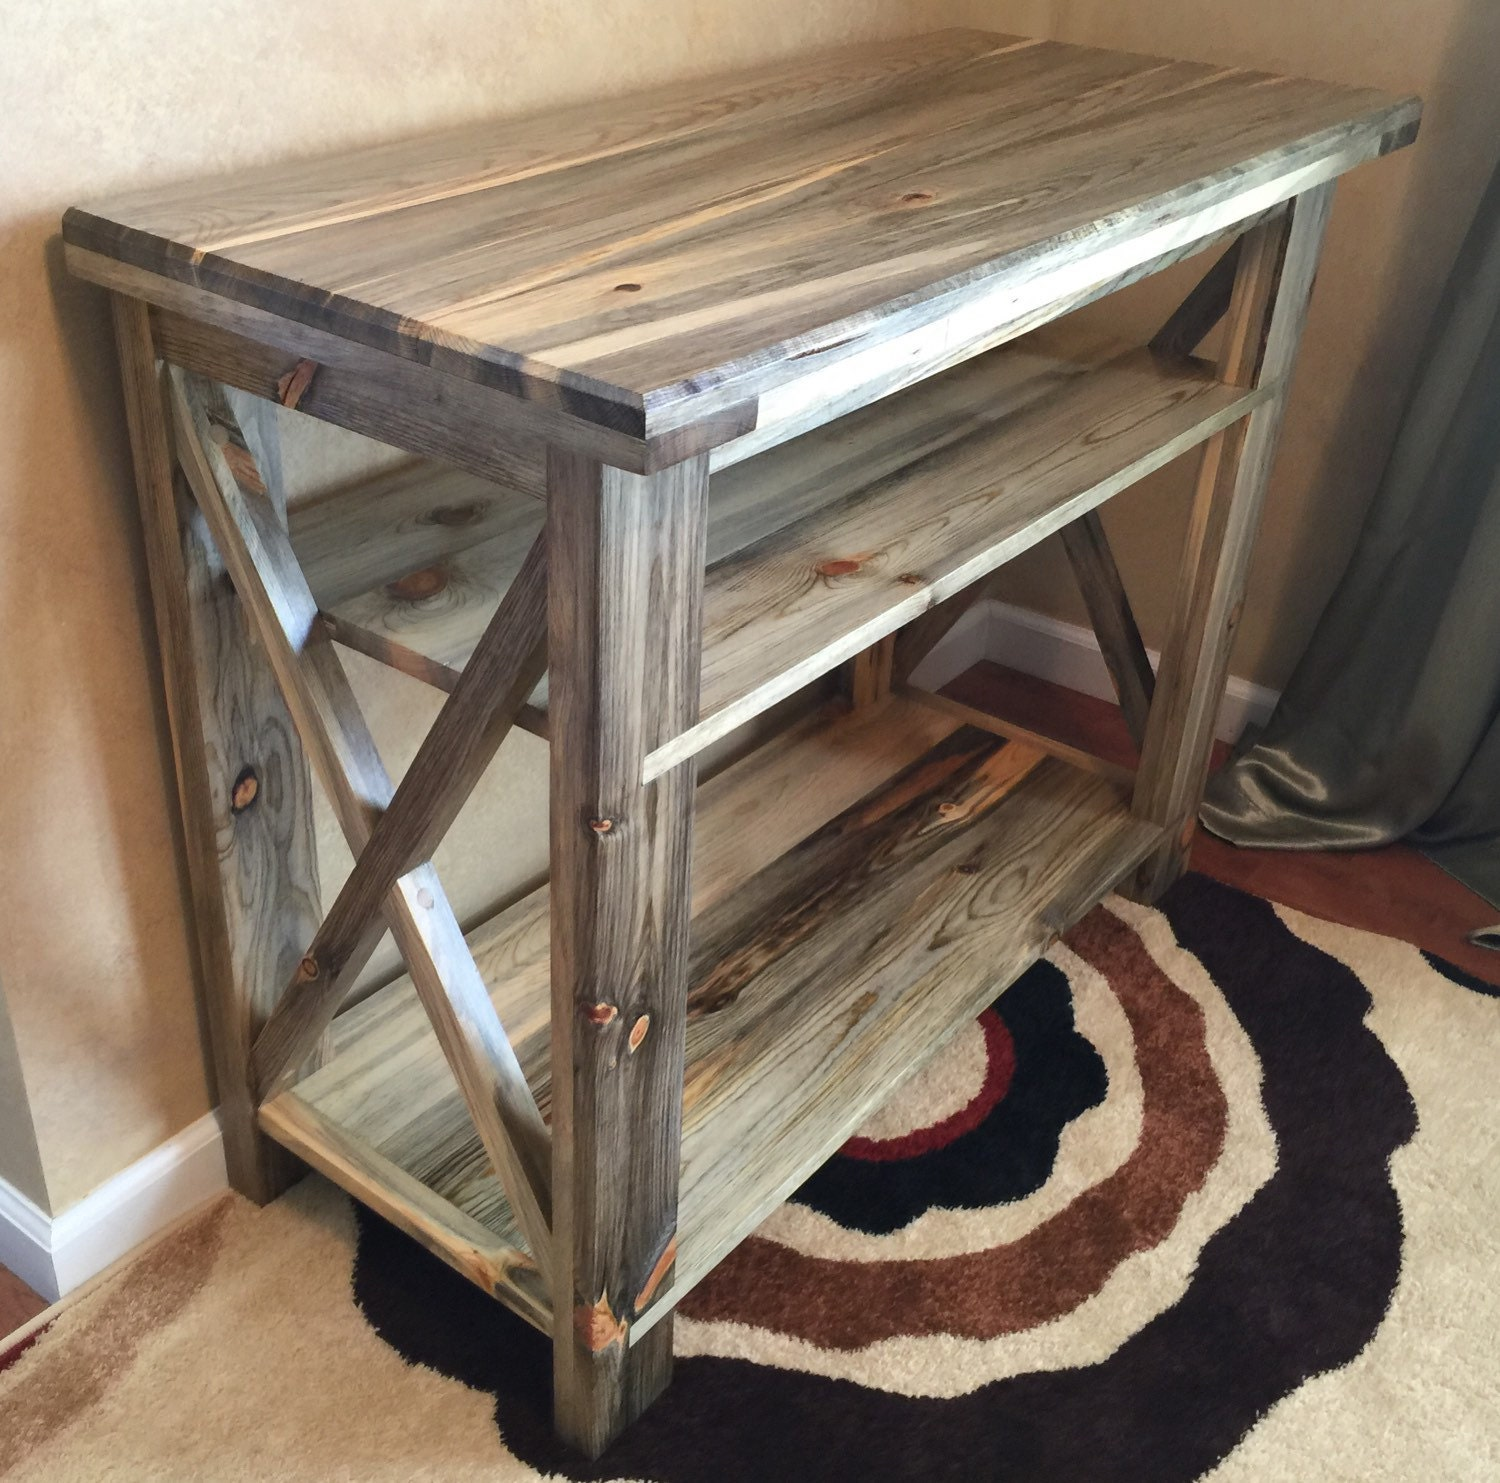 Foyer Table Name : Rustic industrial entryway console table sofa foyer